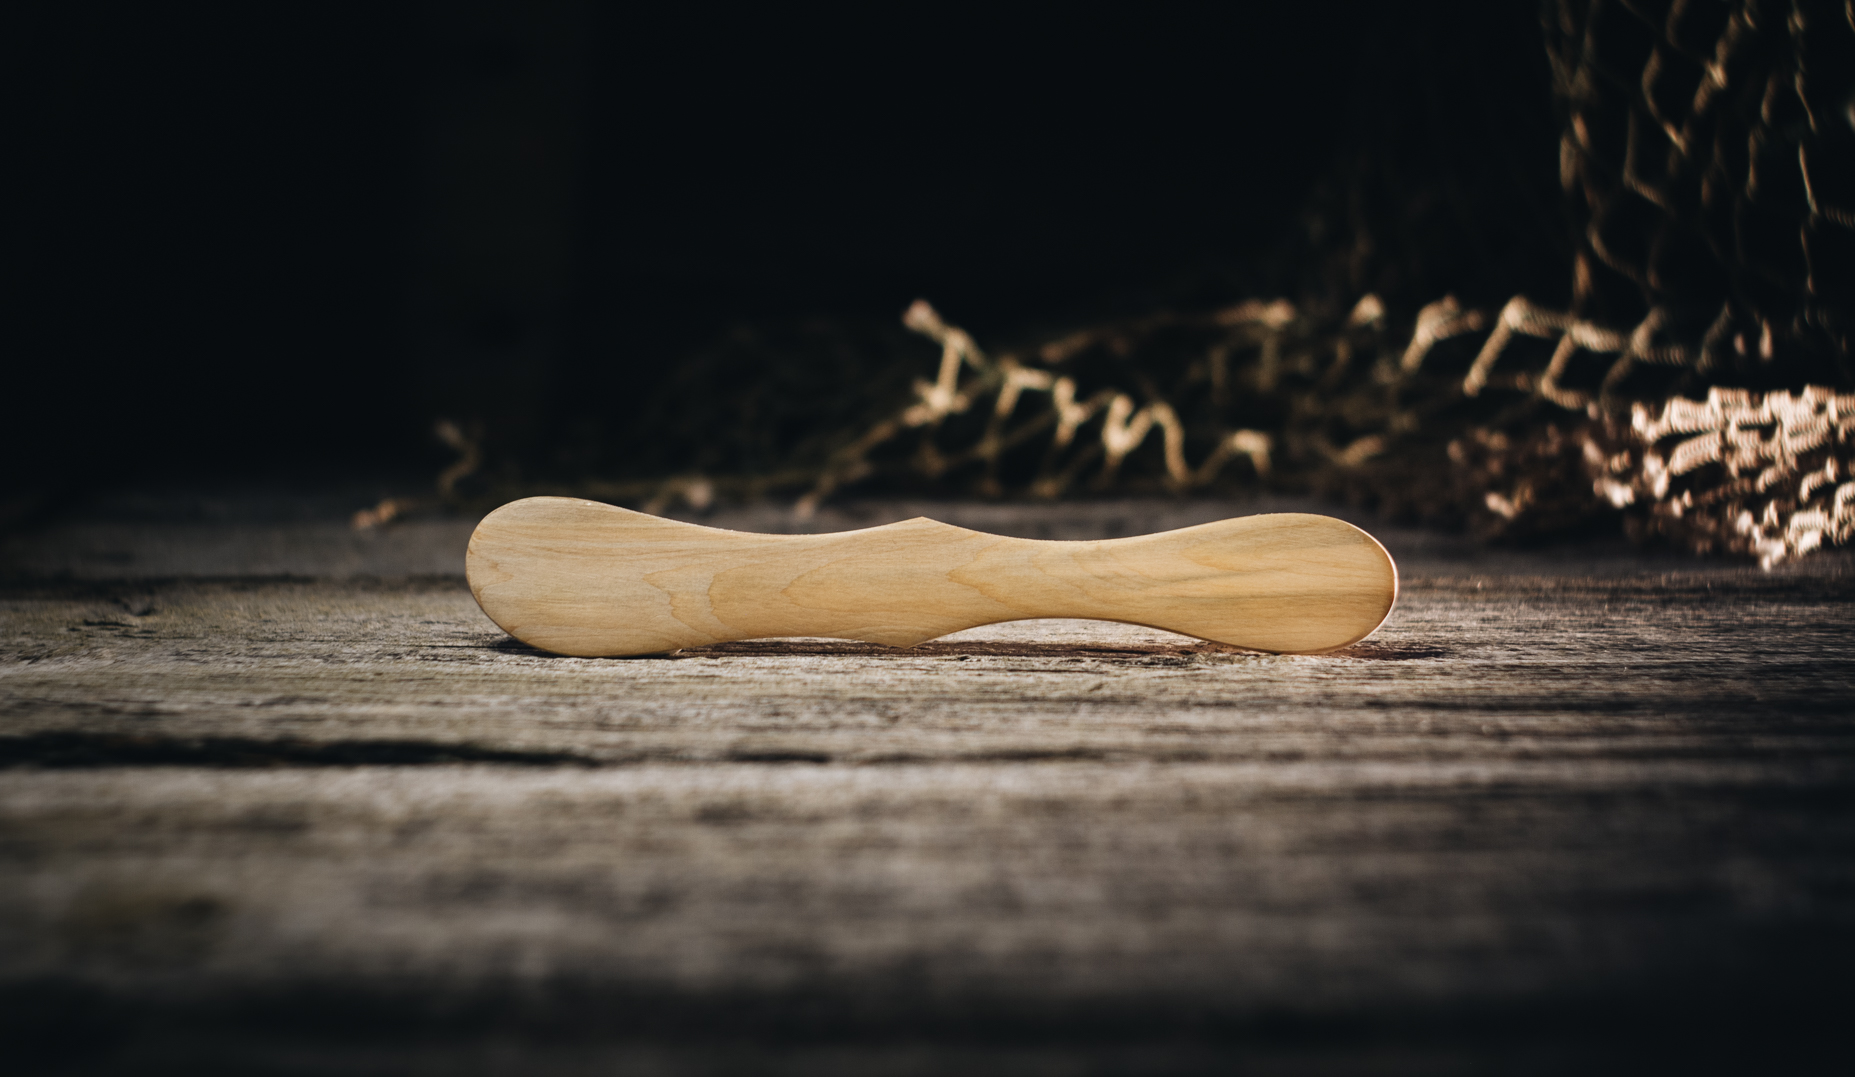 Butter knife (juniper) 175 mm